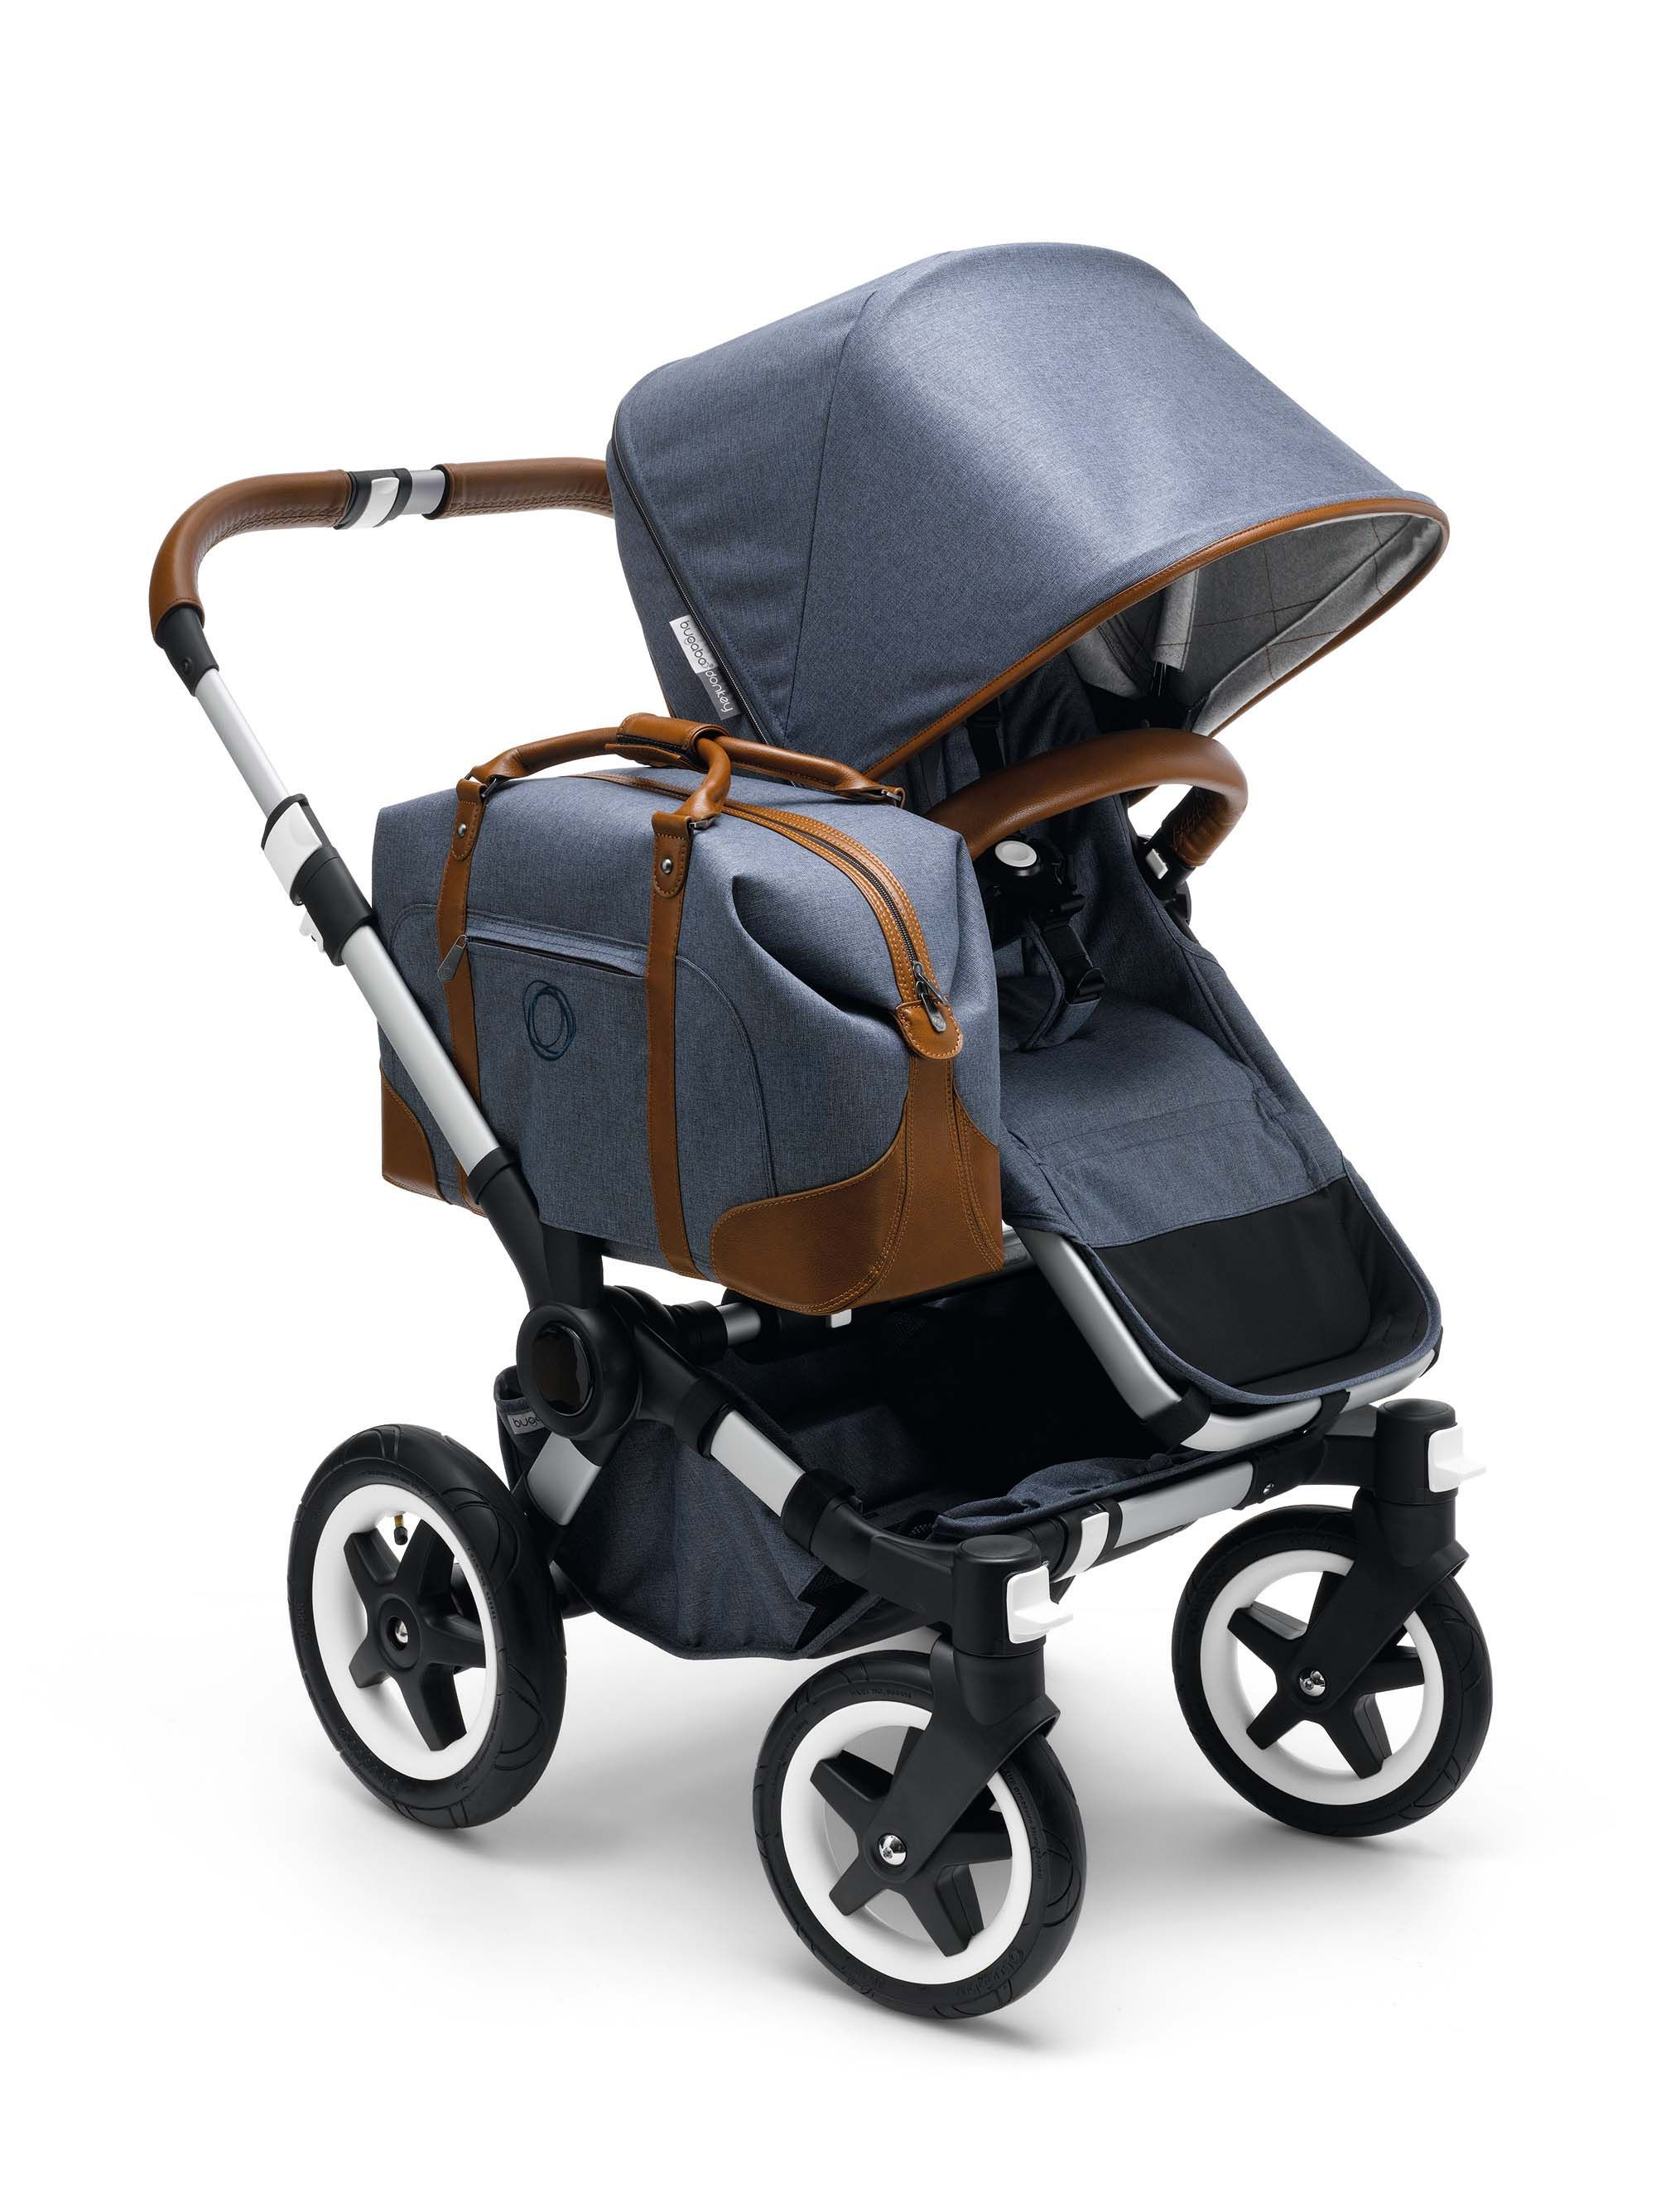 the obaby stroller was designed for people suffering from muscular ... - Designer Kinderwagen Longboard Quinny